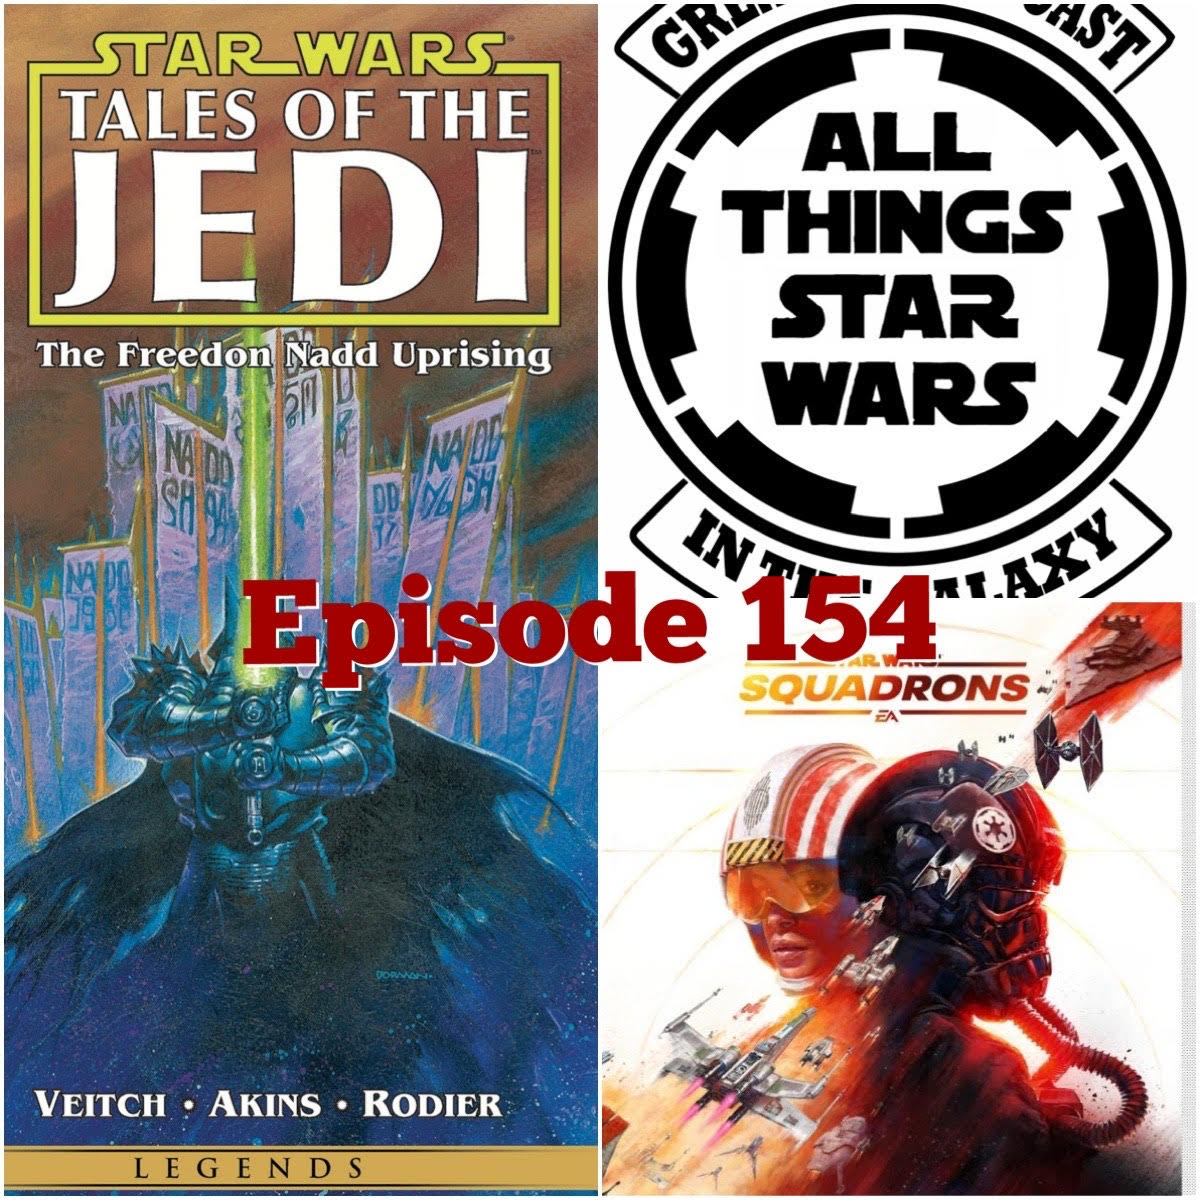 Episode 154 - Squadrons/More Tales of the Jedi